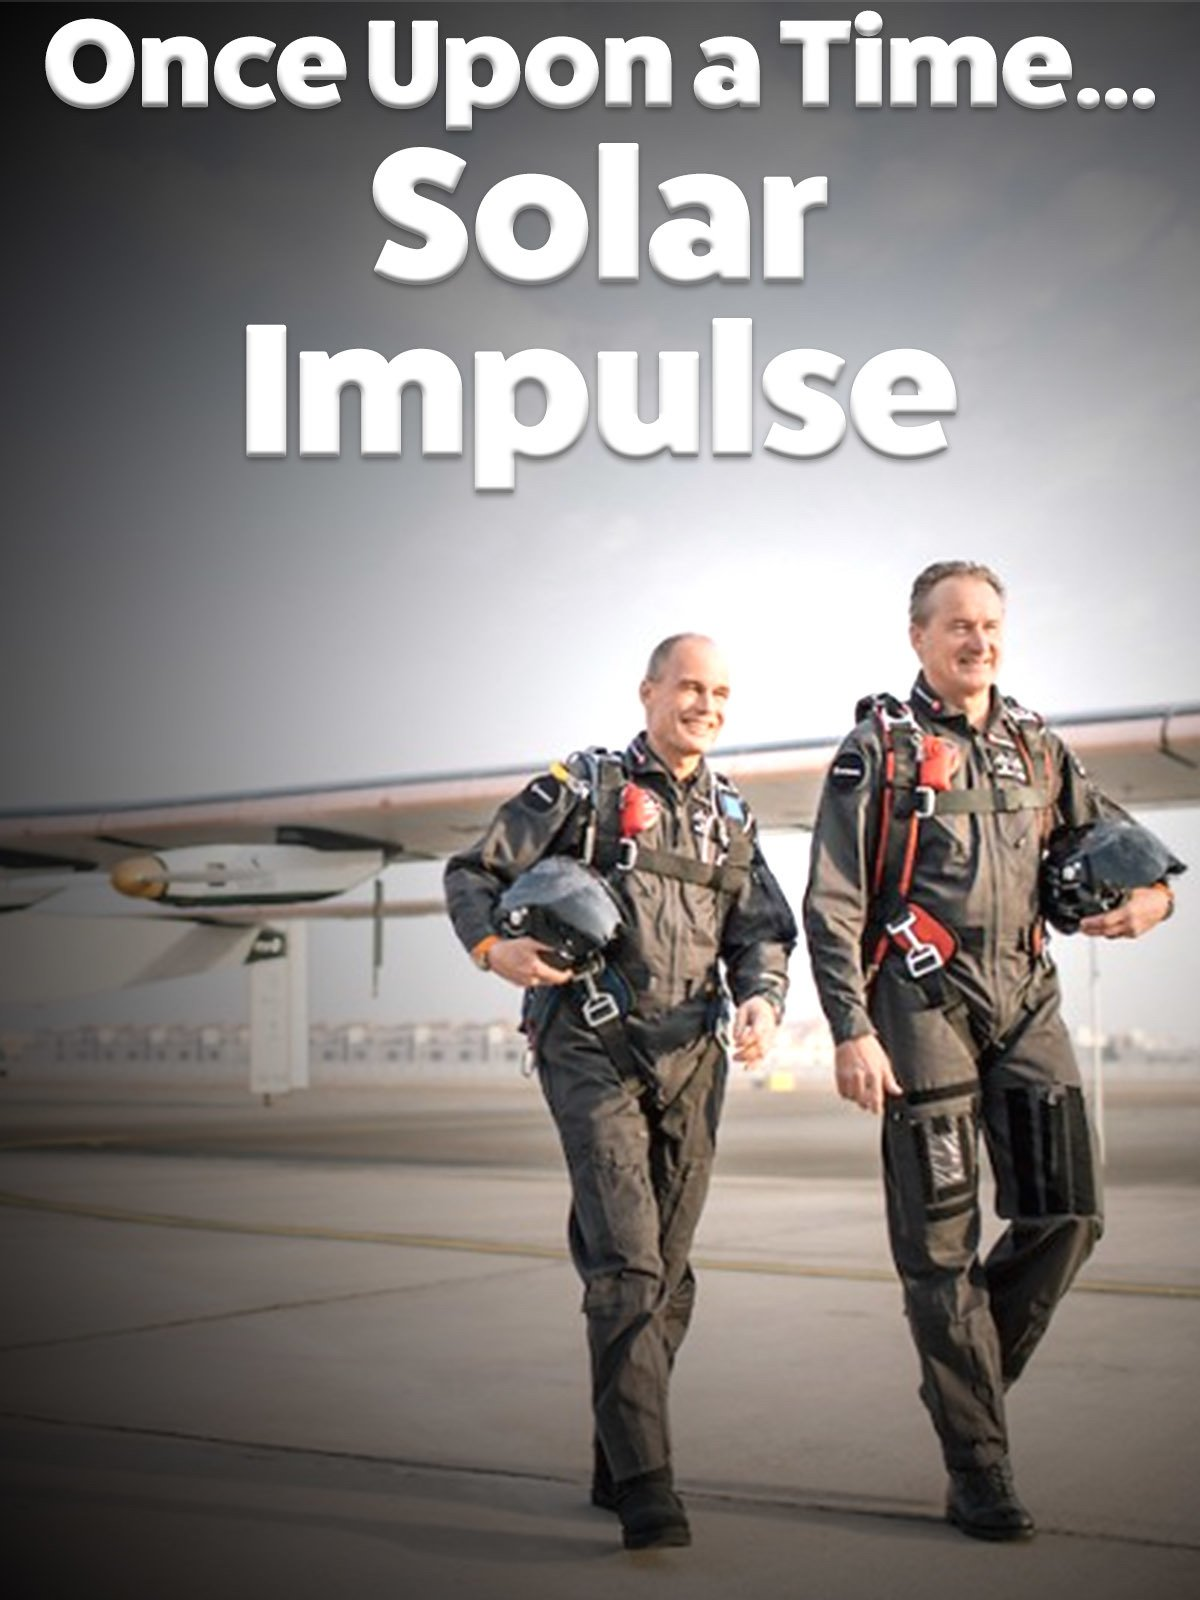 Once upon a time...Solar Impulse